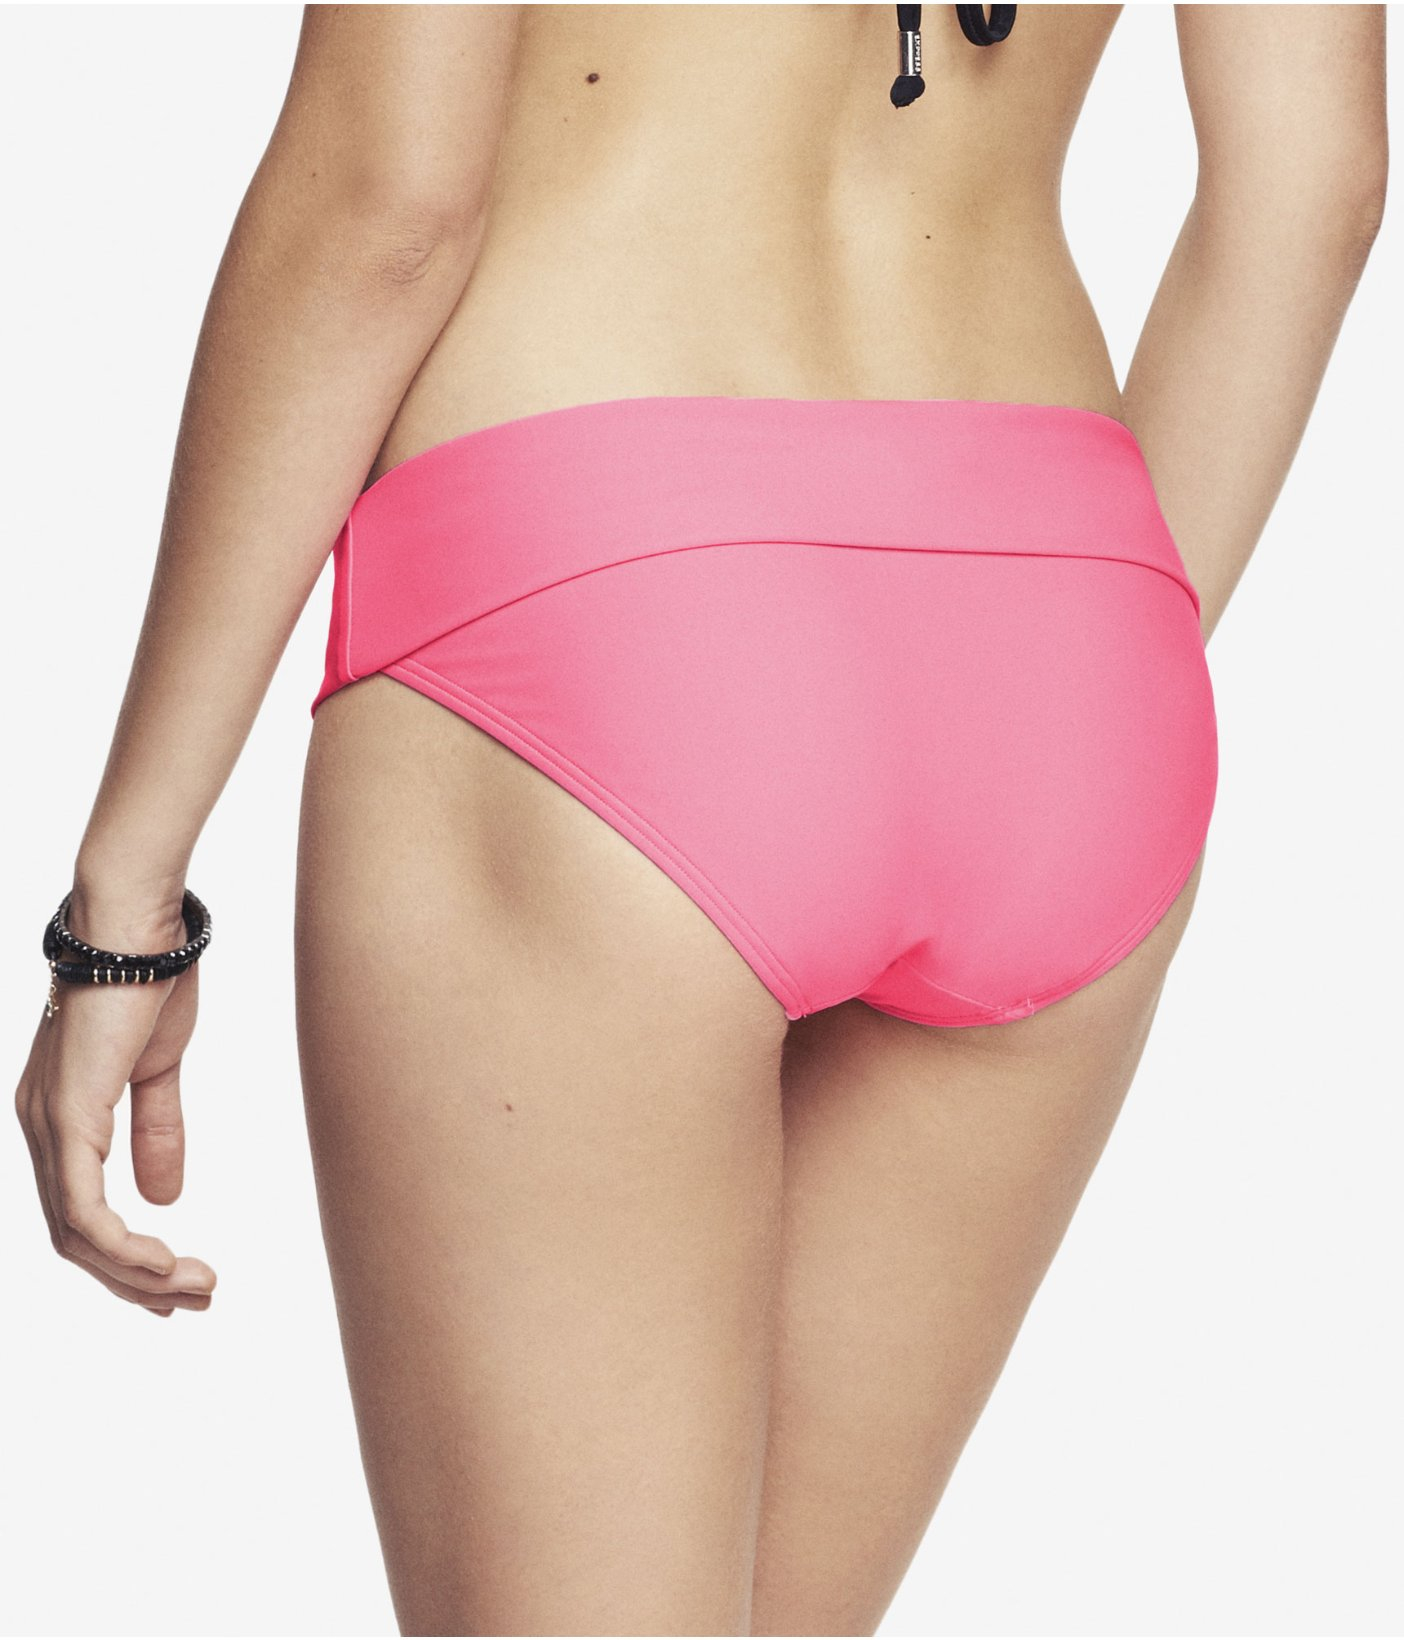 lyst express foldover low rise bikini bottom neon pink in pink. Black Bedroom Furniture Sets. Home Design Ideas